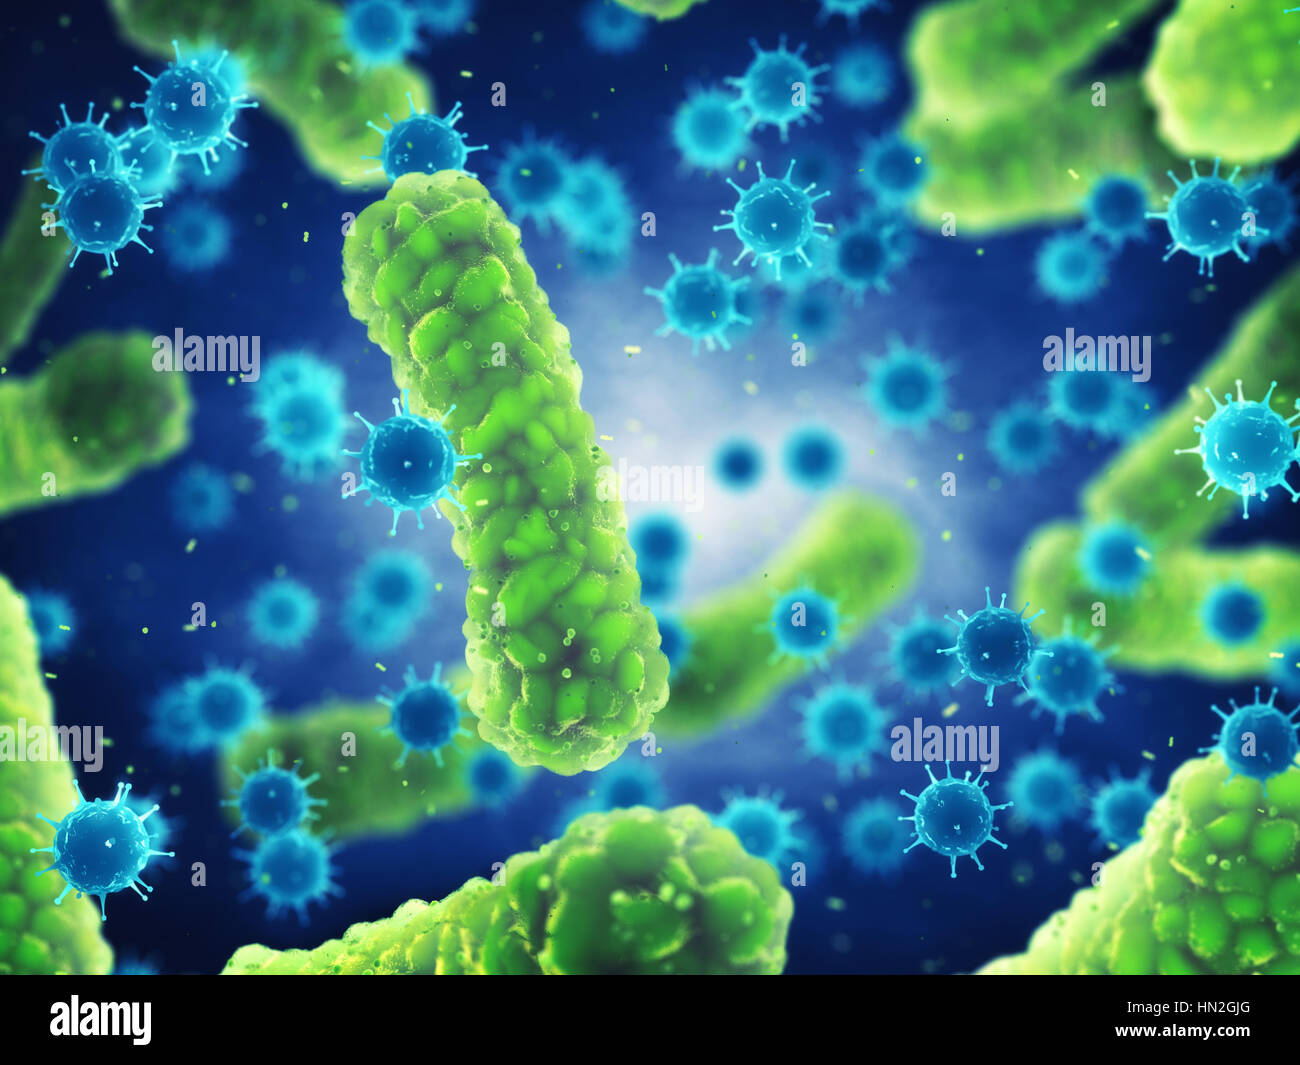 Pathogenic bacteria and viruses , Microscopic germs that cause infectious diseases , Viral and bacterial infection - Stock Image